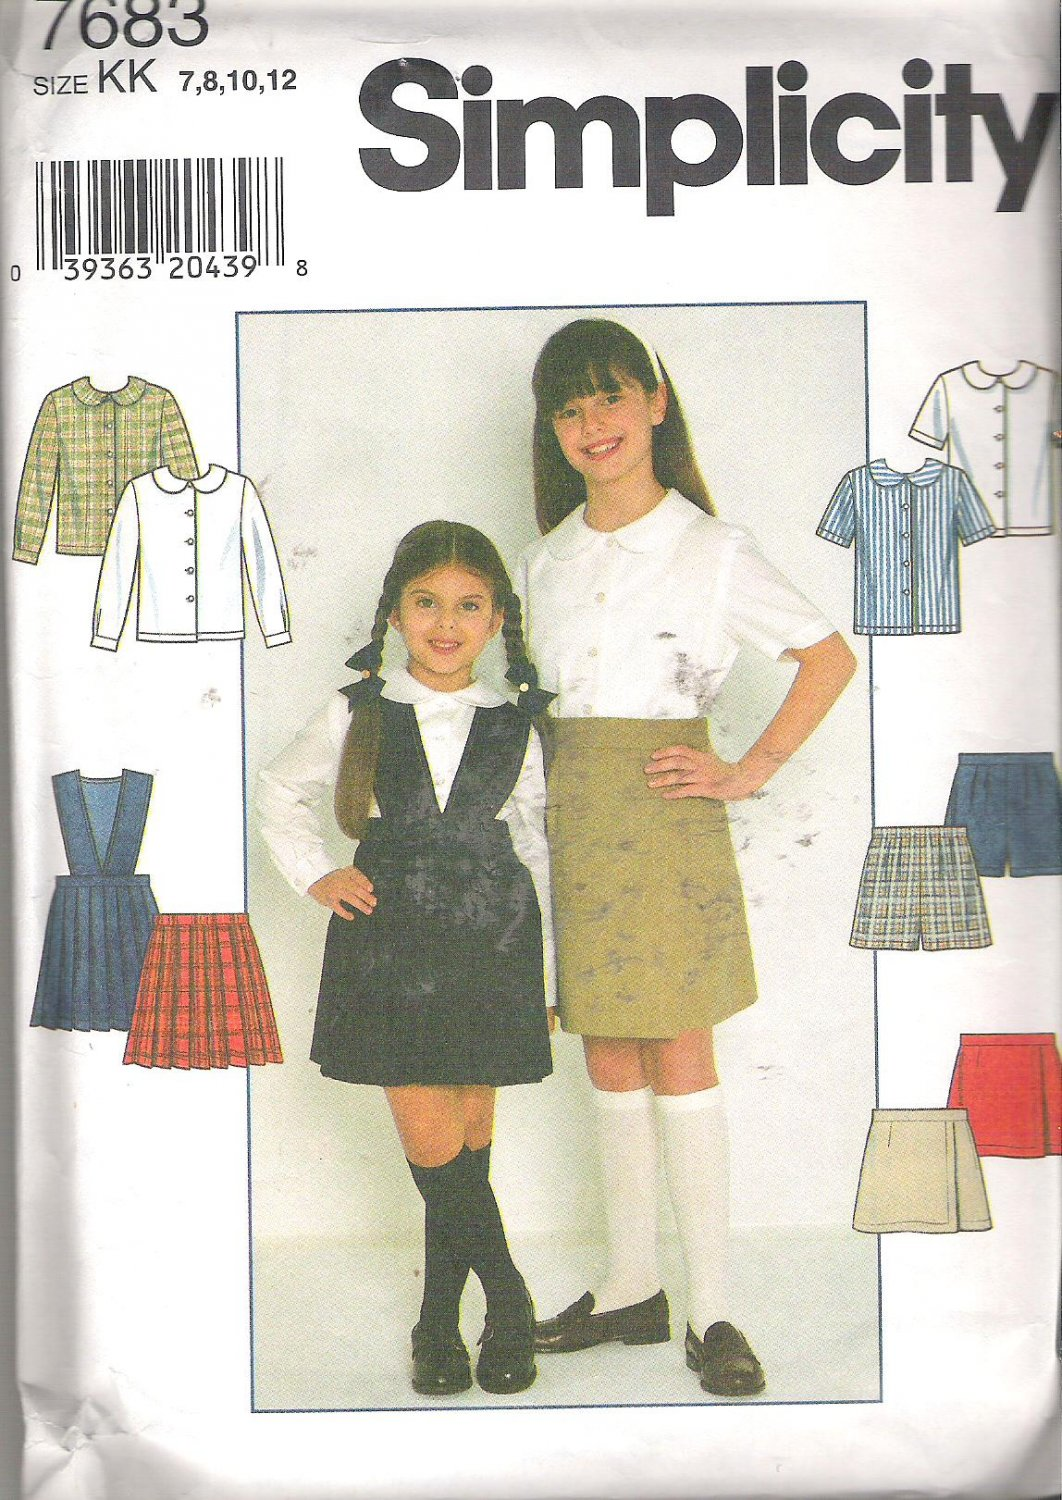 Simplicity 7683 (1997) Pattern Girls Blouse Shorts Skirt Detachable Bodice Size 7-12 Cut to 12